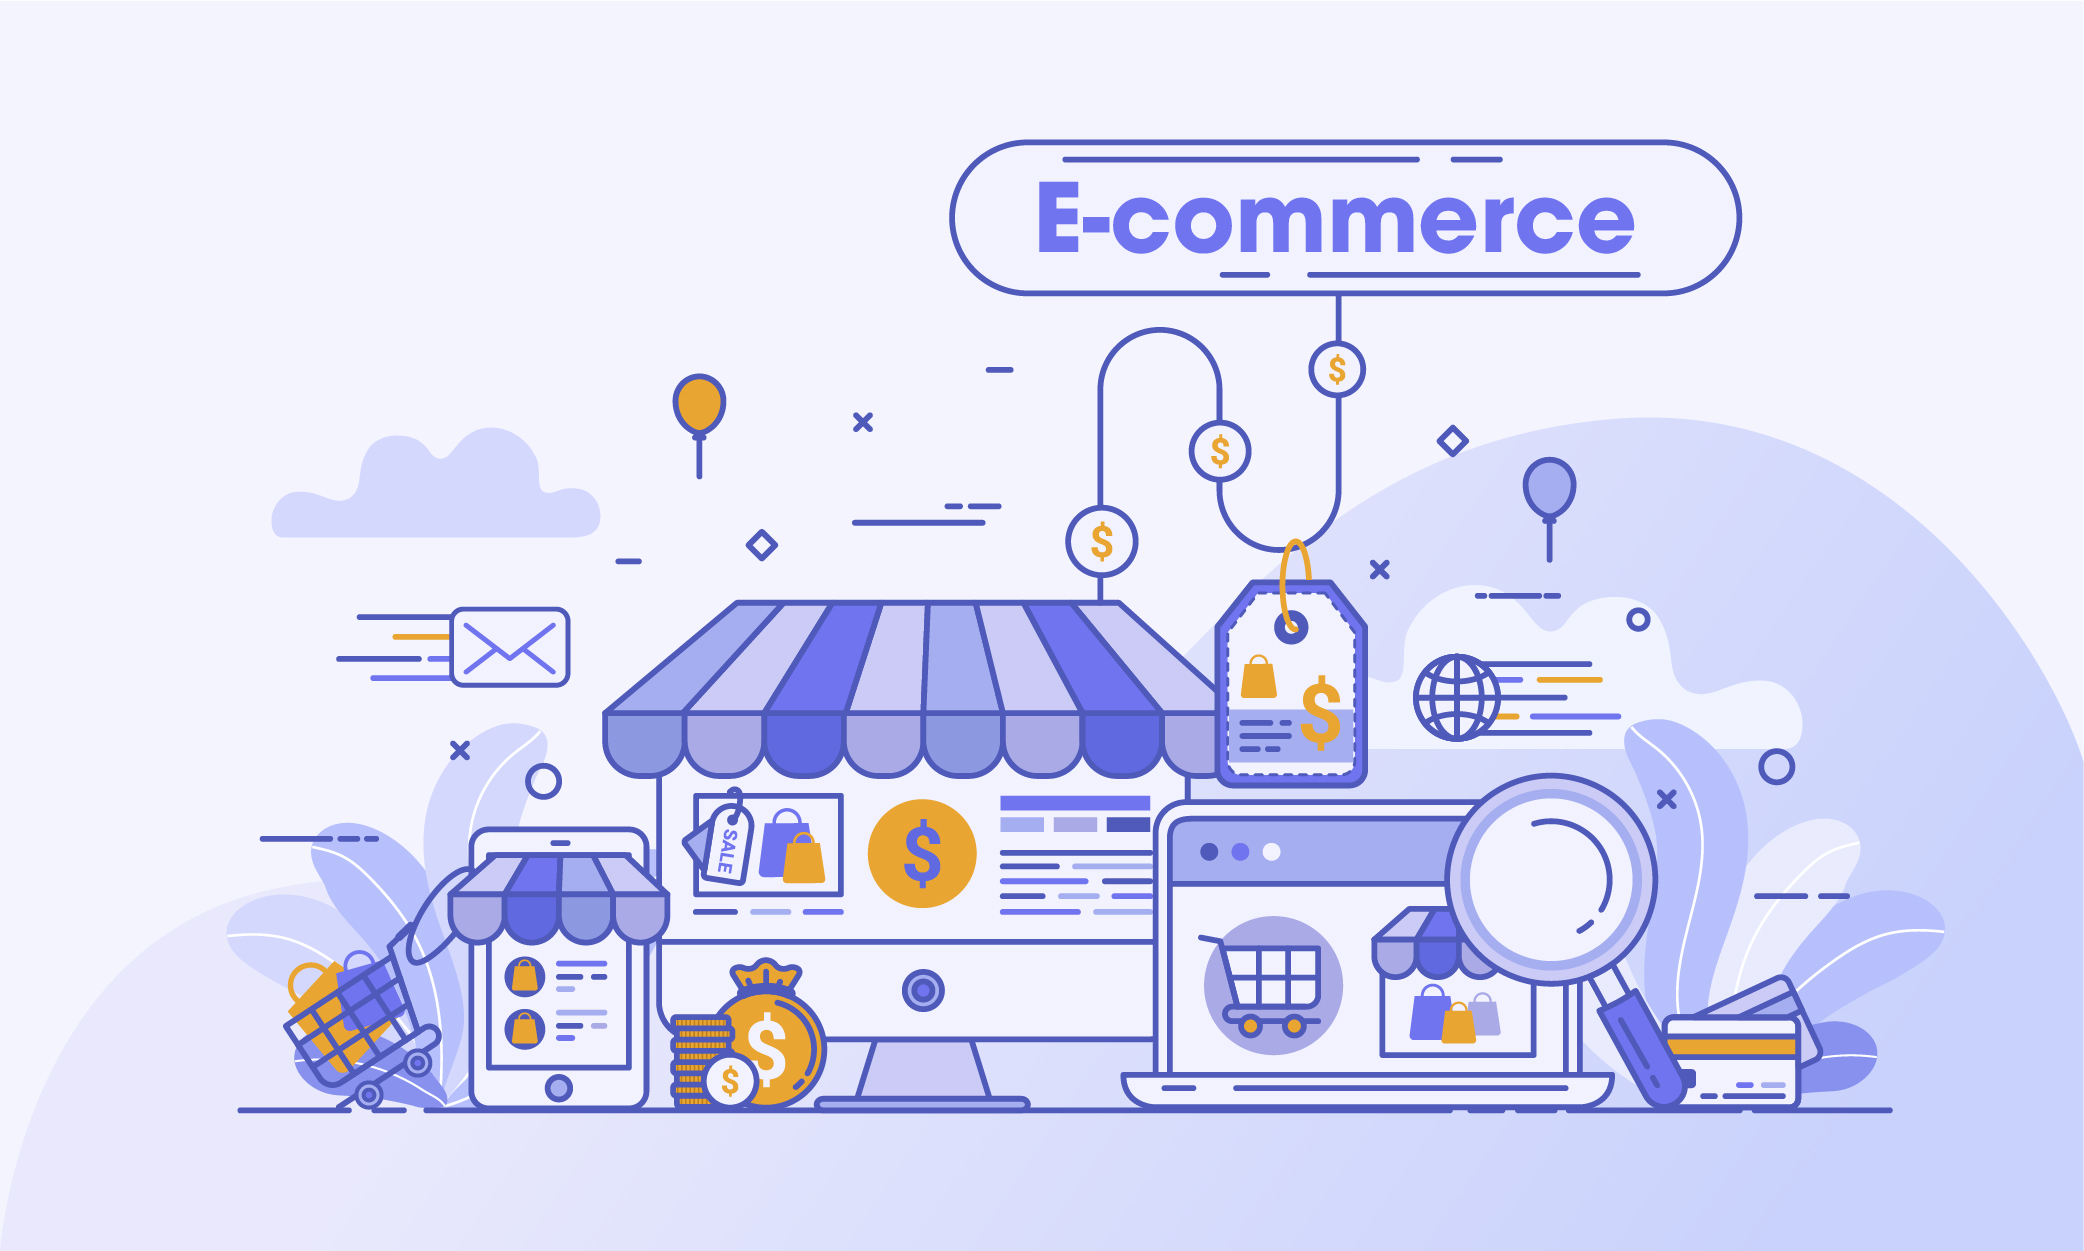 Why should you bet on the future of e-commerce in 2020?